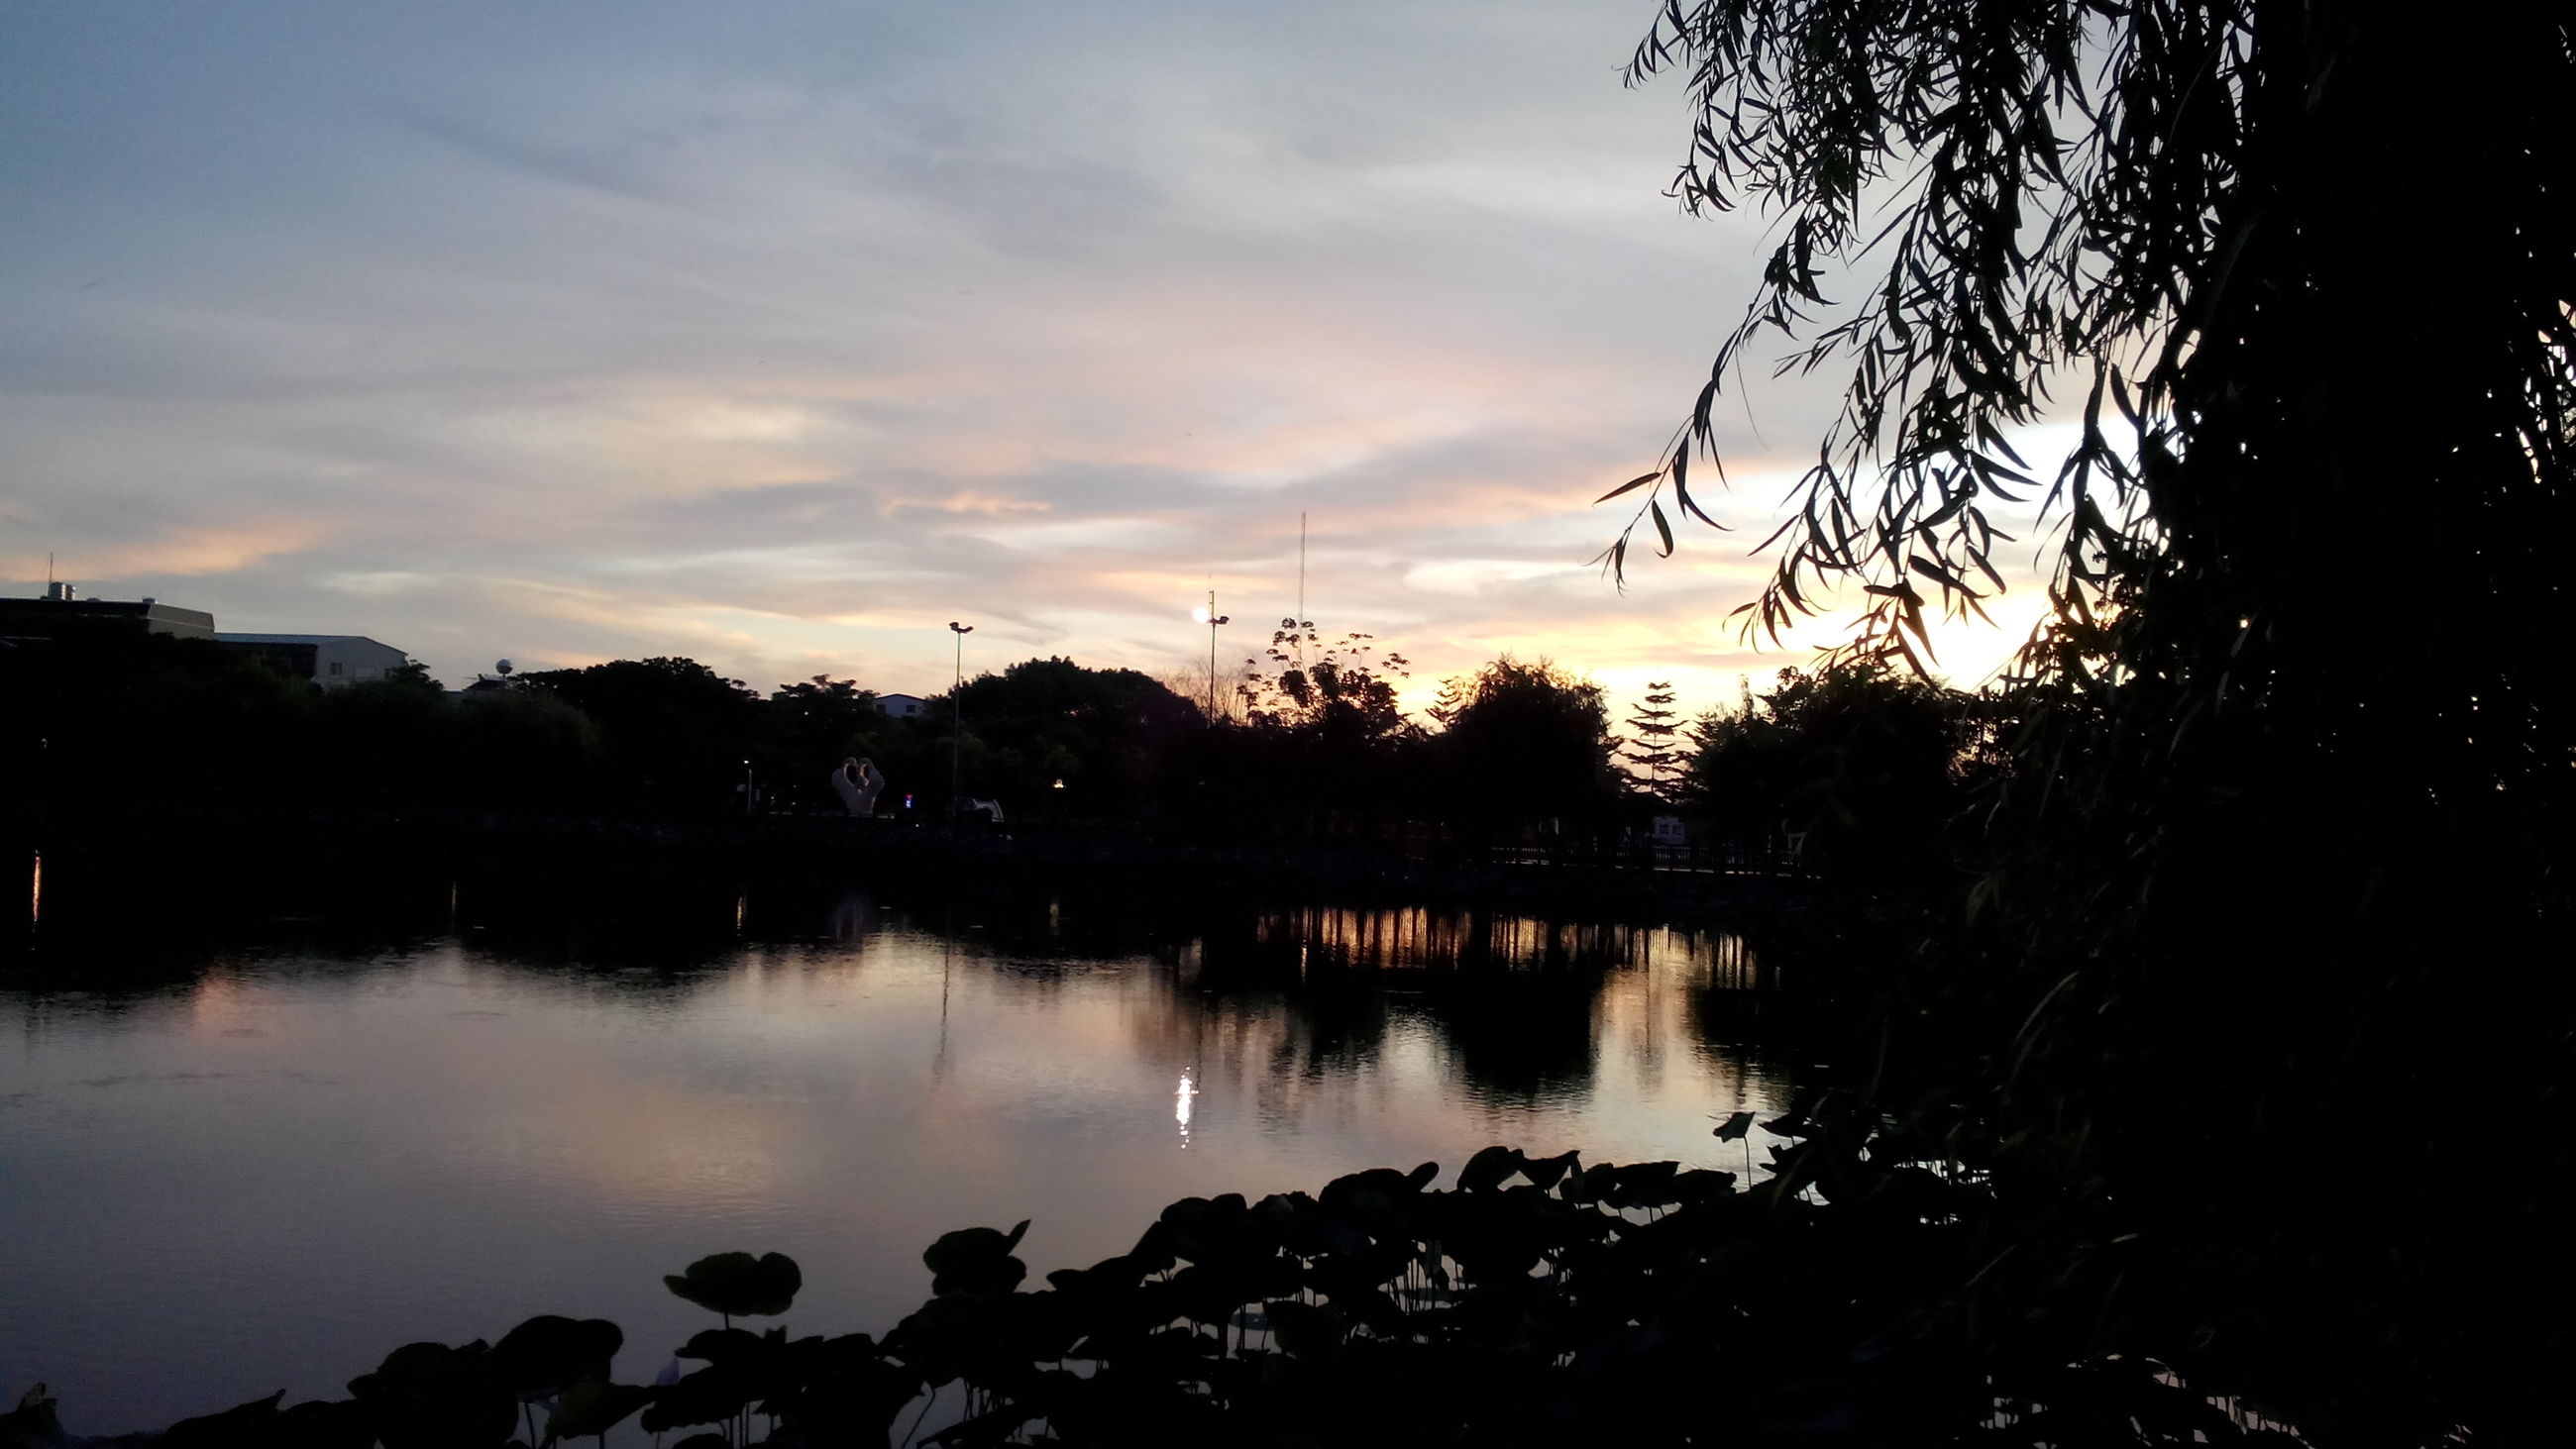 water, sunset, reflection, silhouette, lake, sky, tranquility, tranquil scene, scenics, tree, beauty in nature, cloud - sky, nature, idyllic, cloud, calm, river, outdoors, dusk, orange color